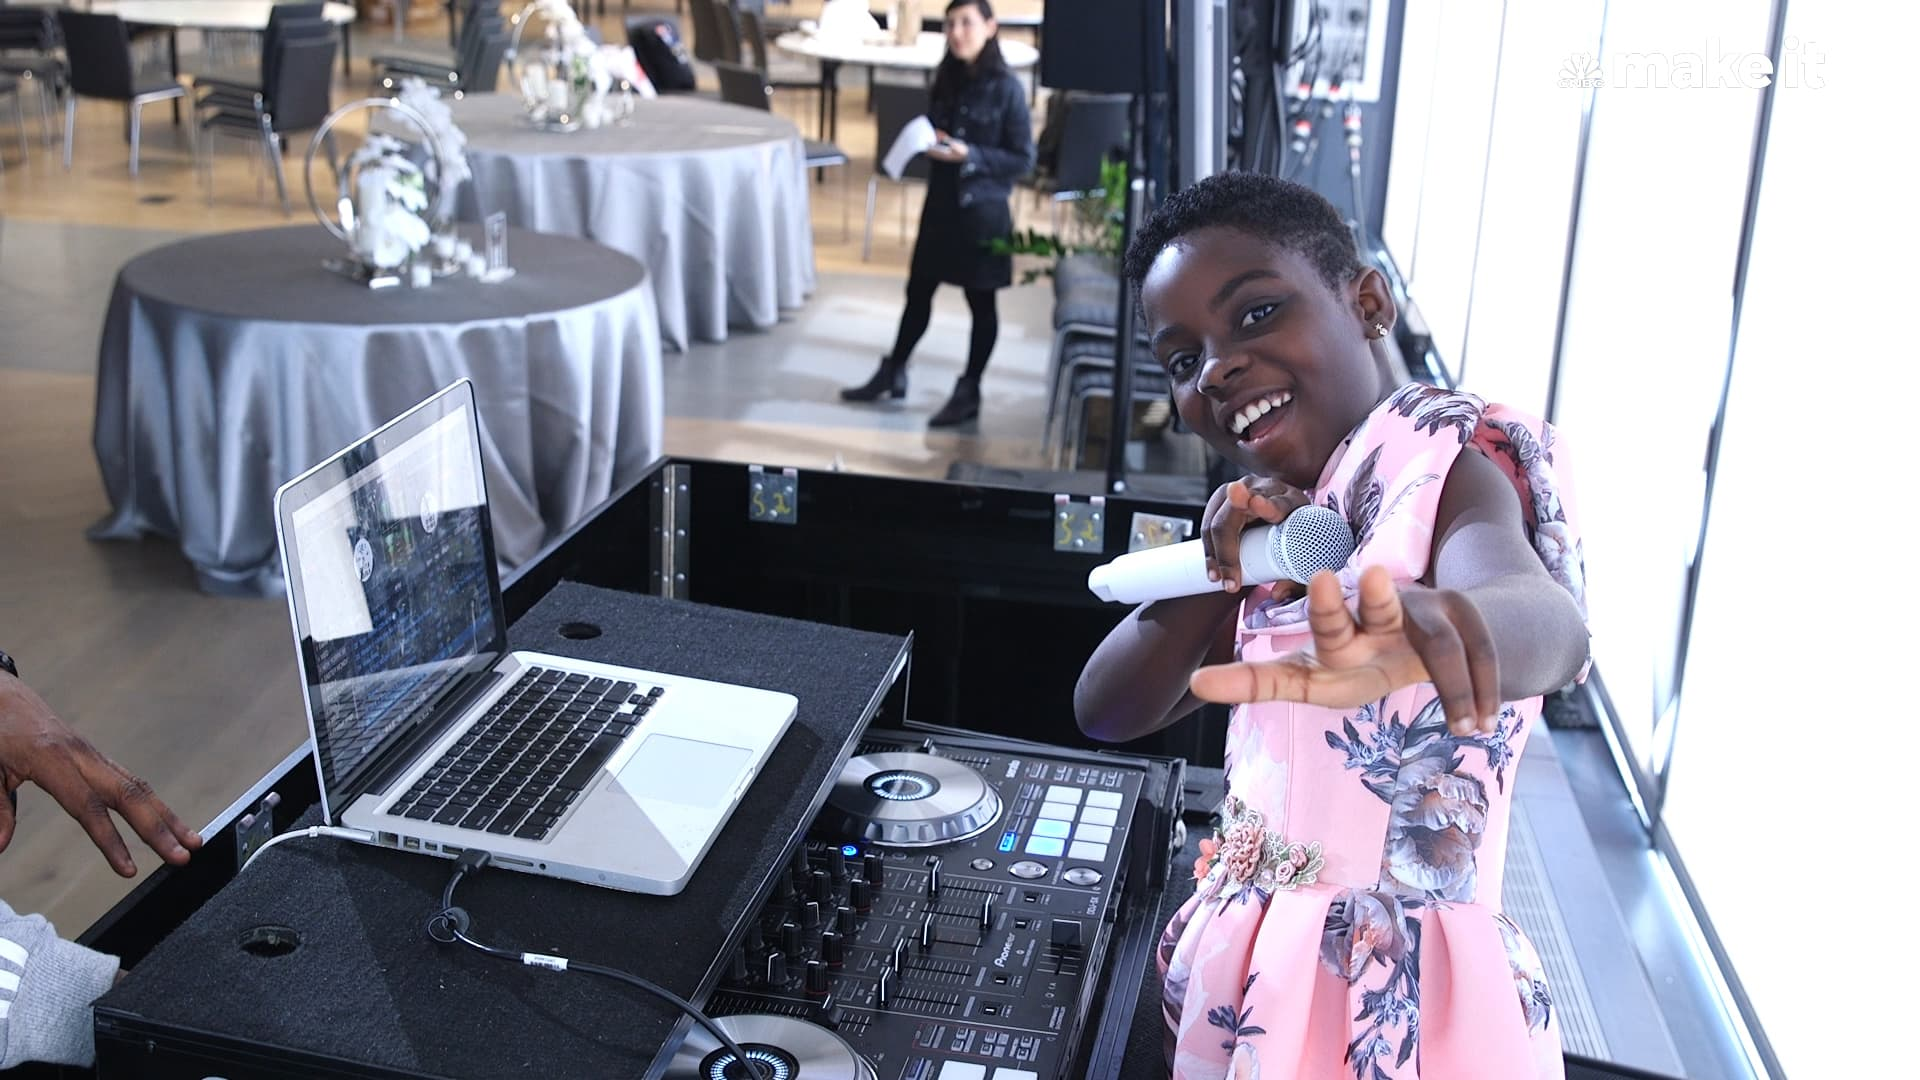 Meet the 11-year-old DJ who's caught the attention of Jay-Z and Bill and Melinda Gates